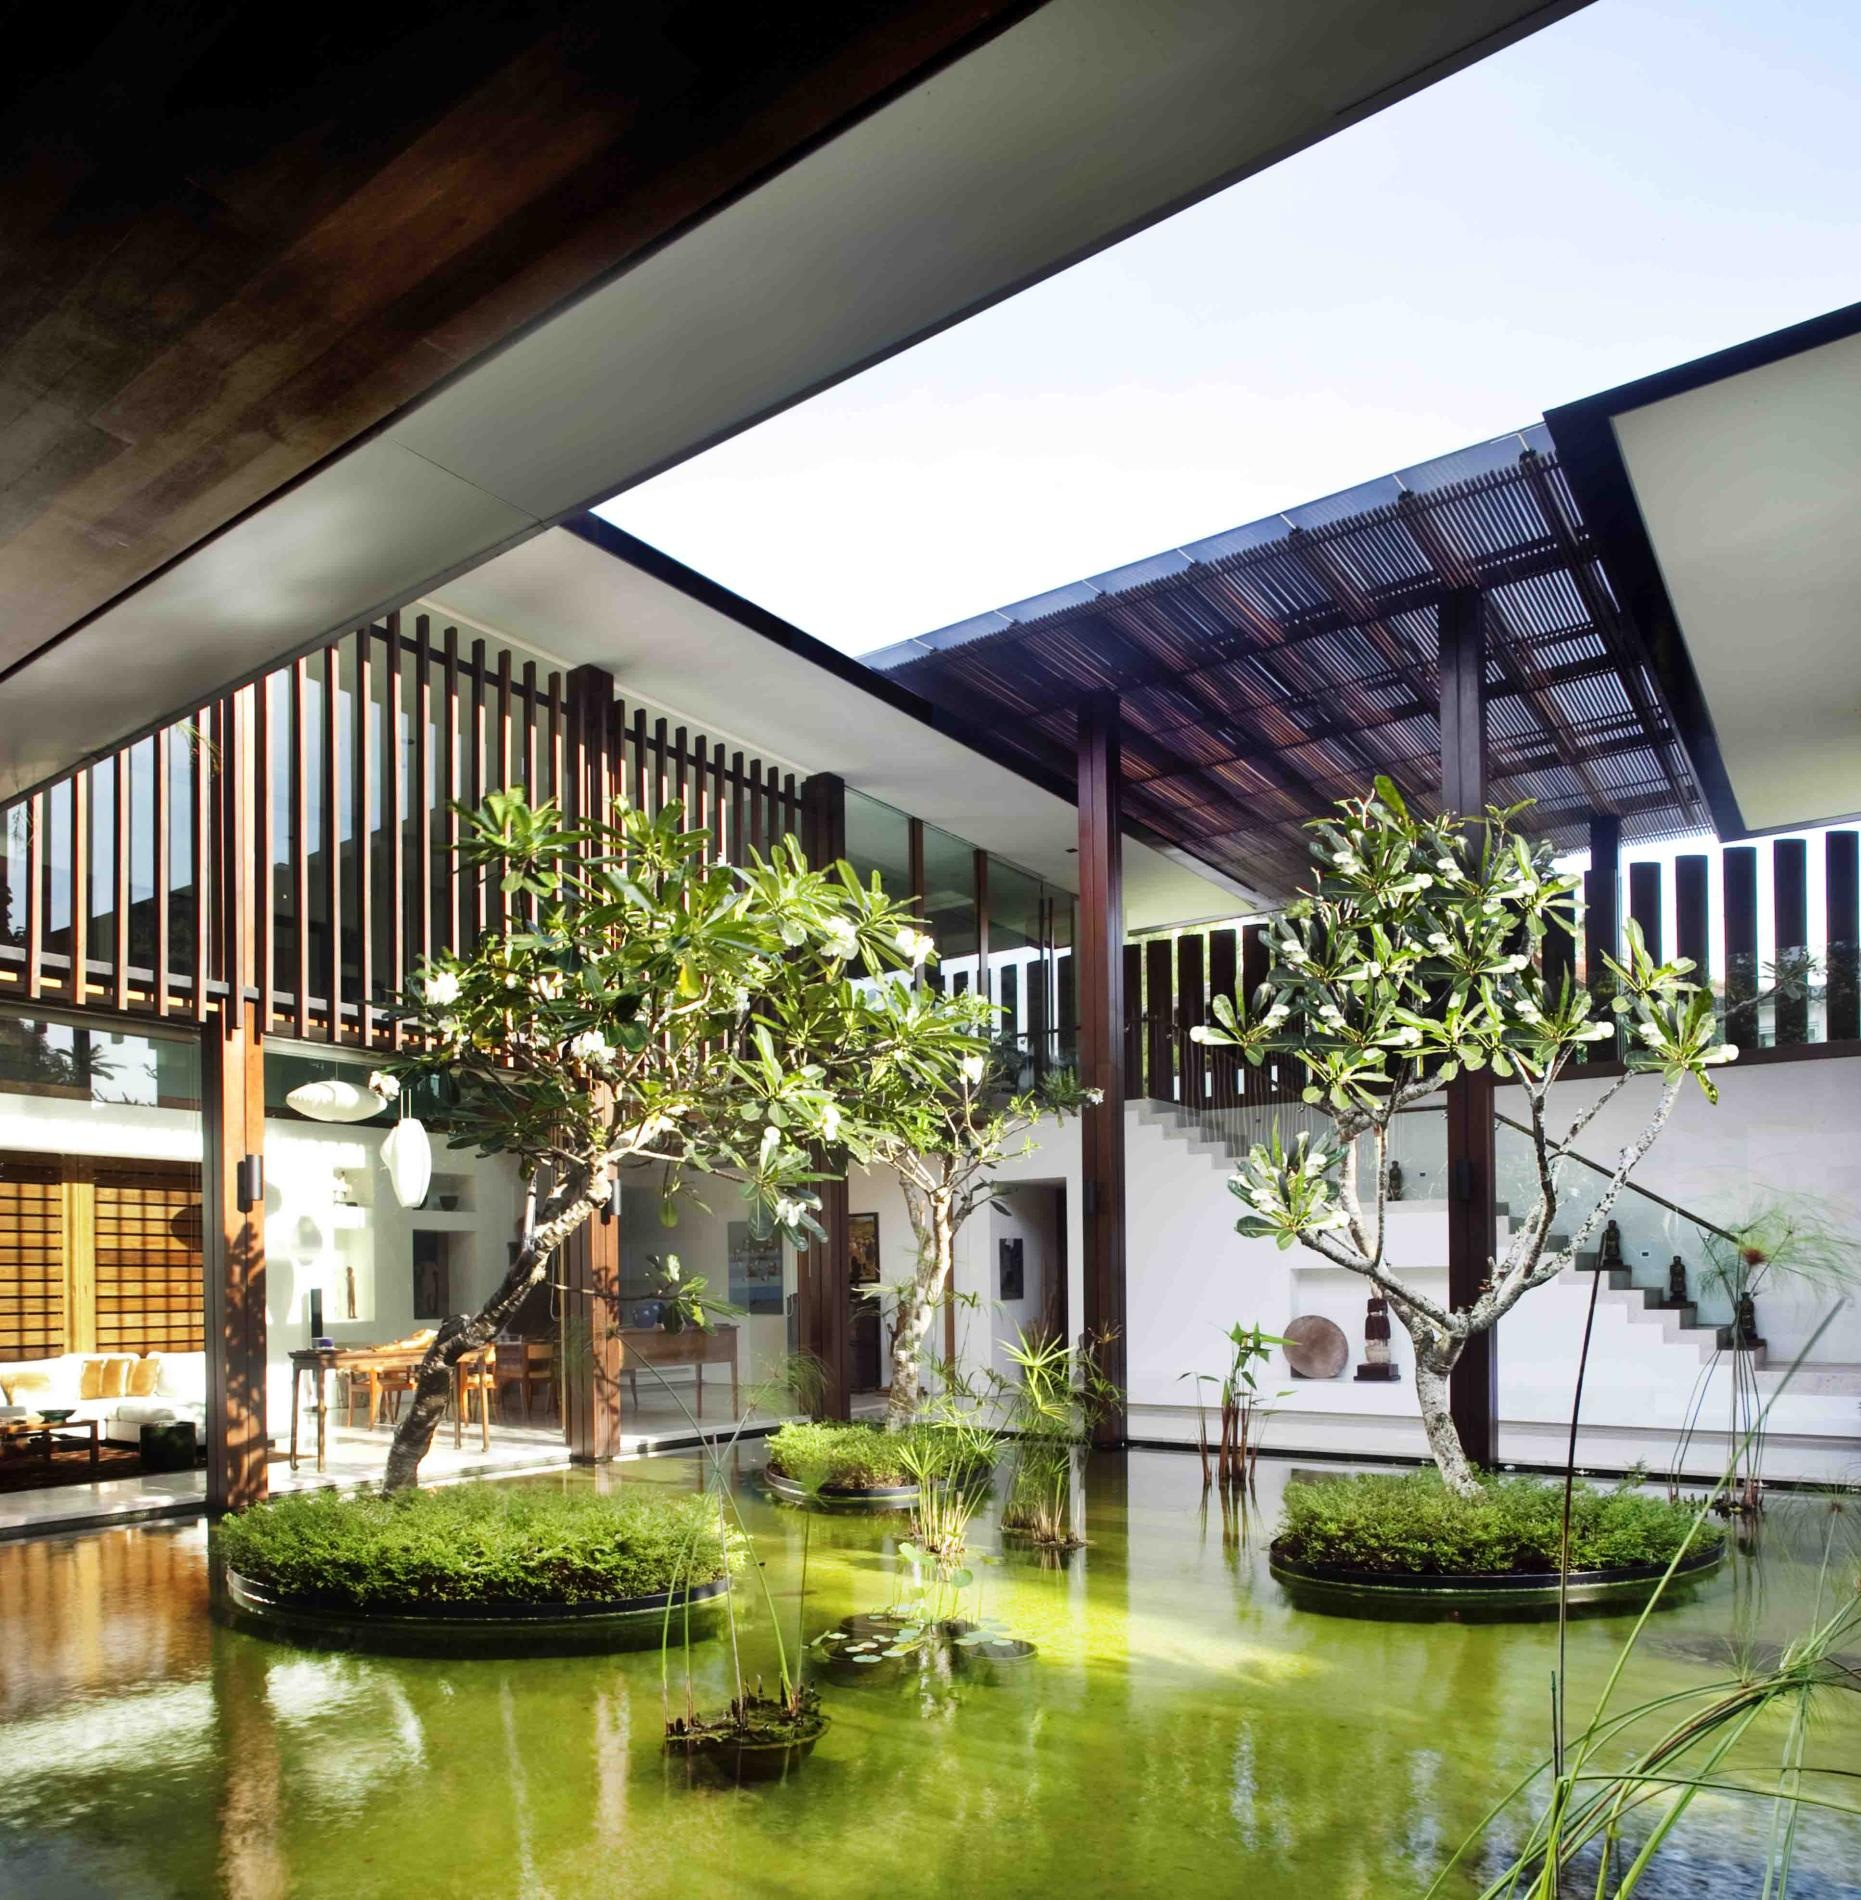 Tropical dream by guz architects singapore v s derqvist for Guz architects sun house